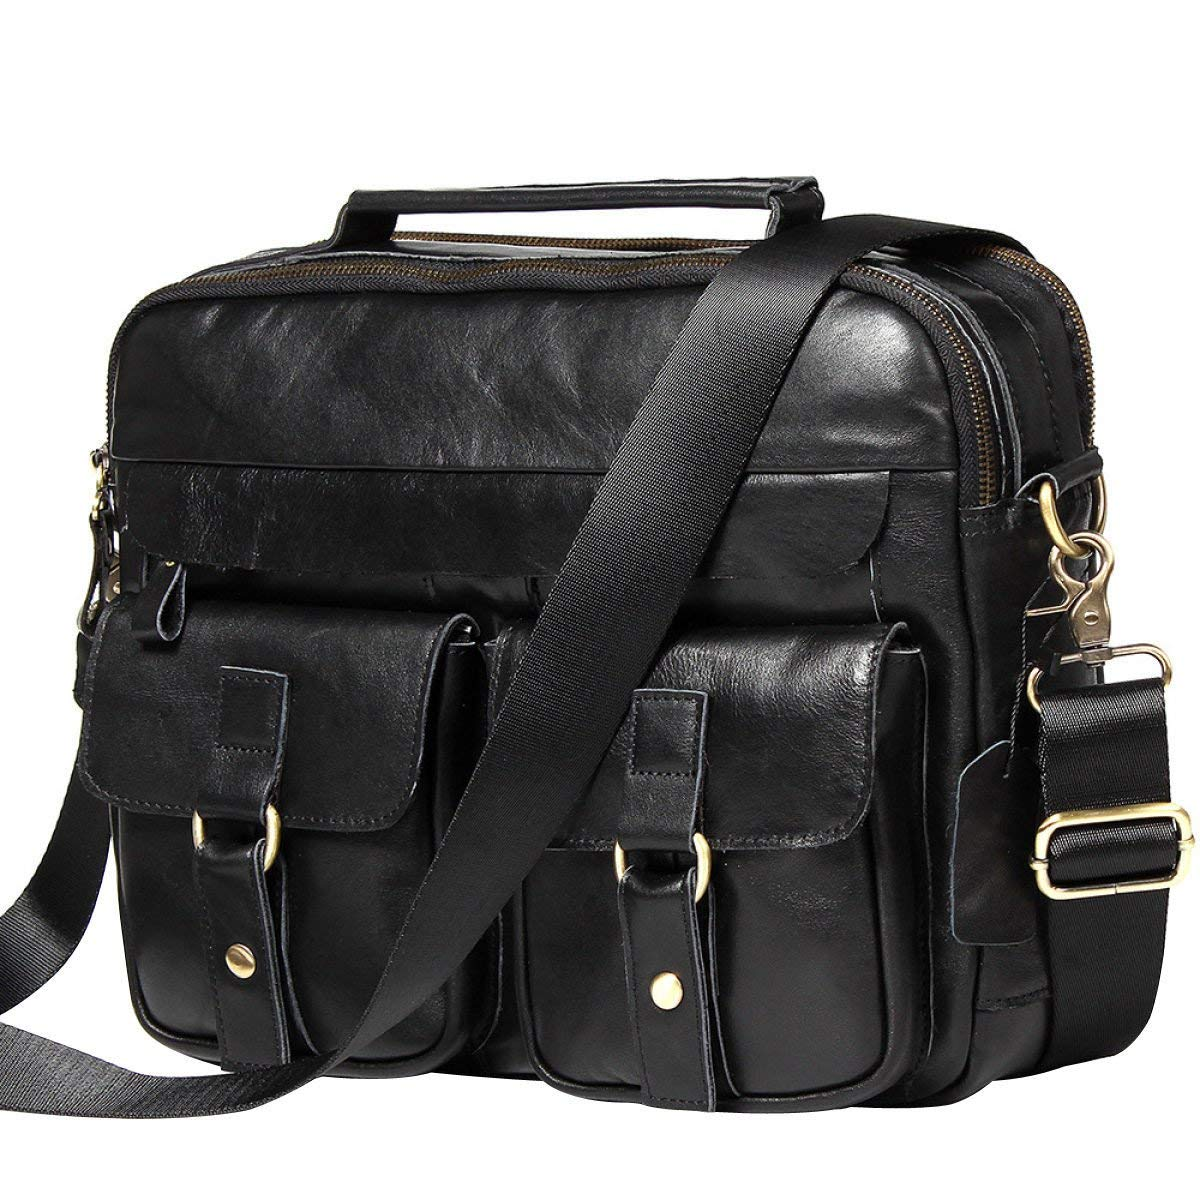 1d38cf76efc9 Cheap Black Leather Bag Mens, find Black Leather Bag Mens deals on ...